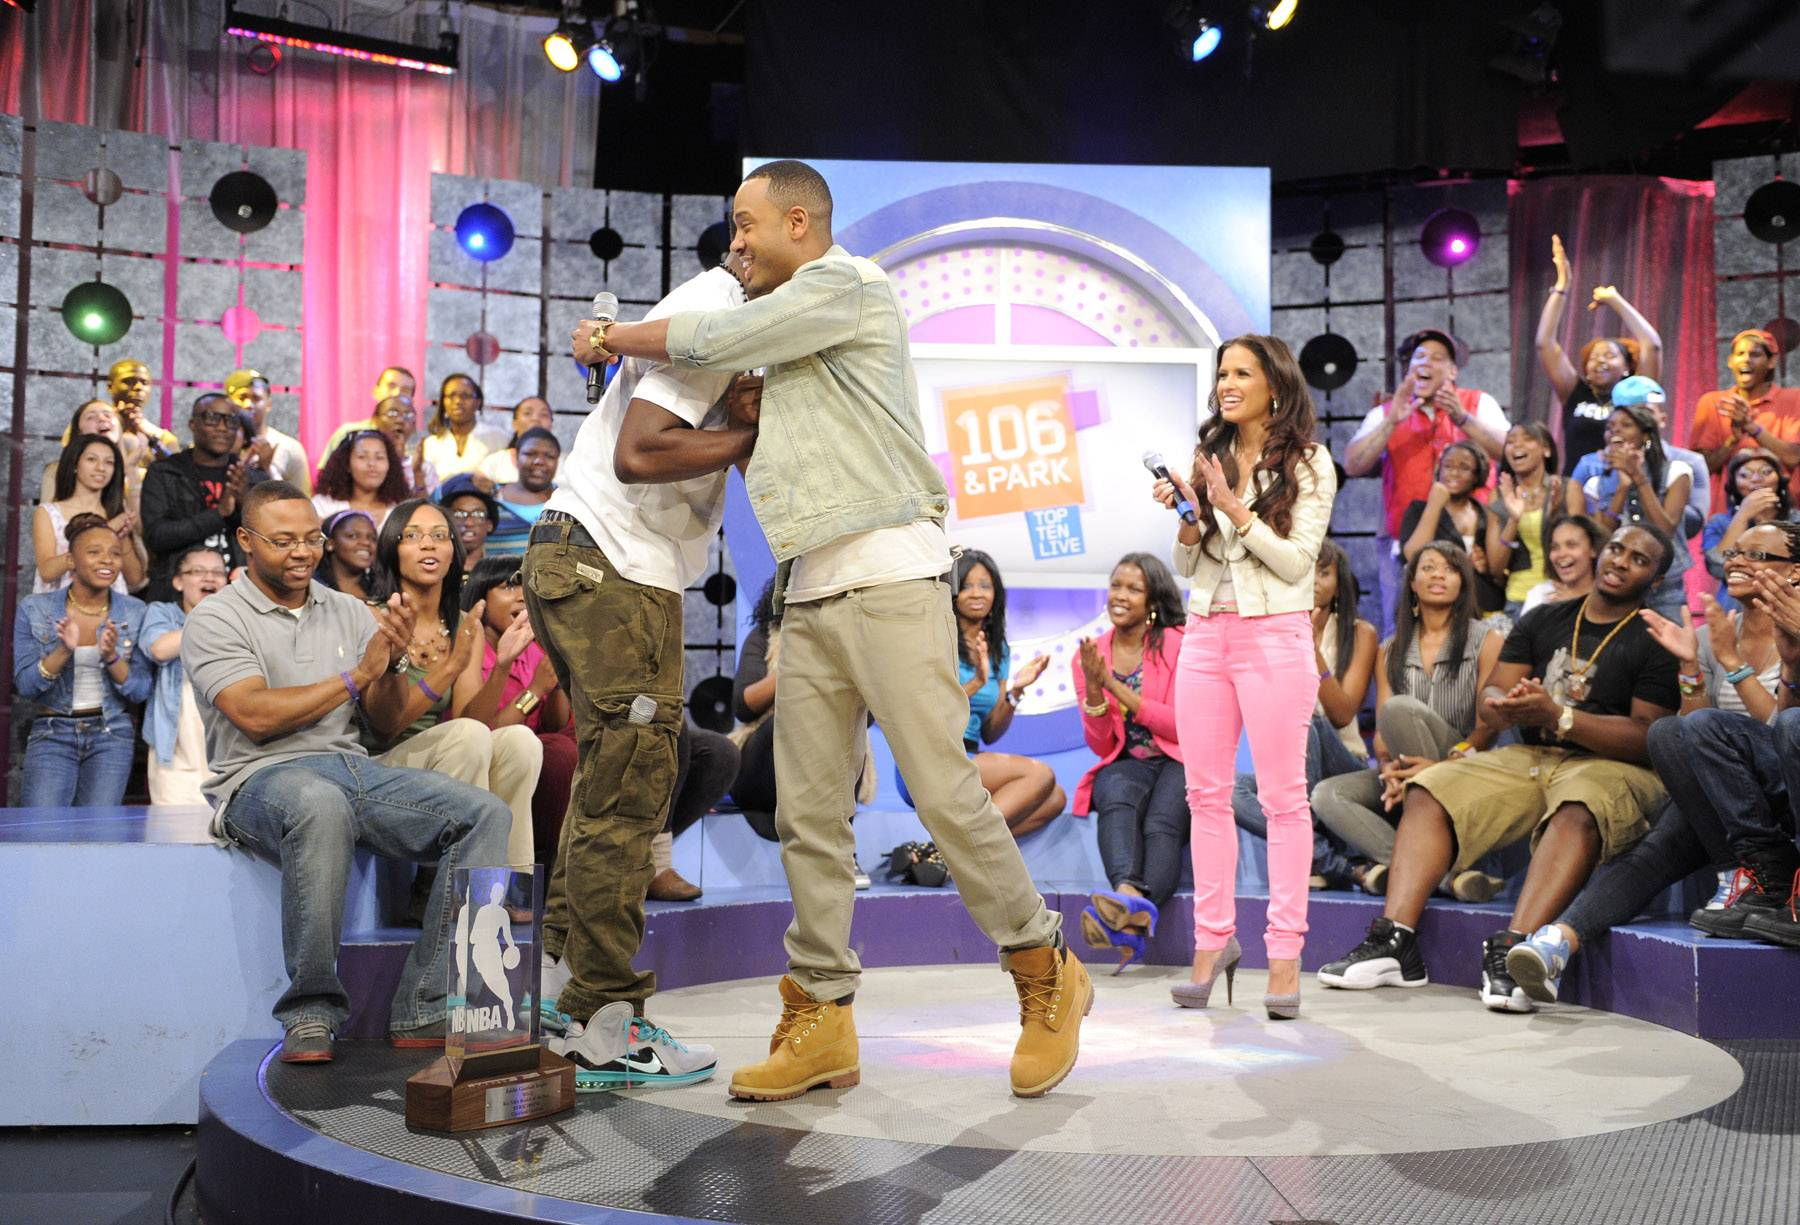 Yo - Kyrie Irving of the Clevaland Cavaliers at 106 & Park, May 16, 2012. (Photo: John Ricard / BET)